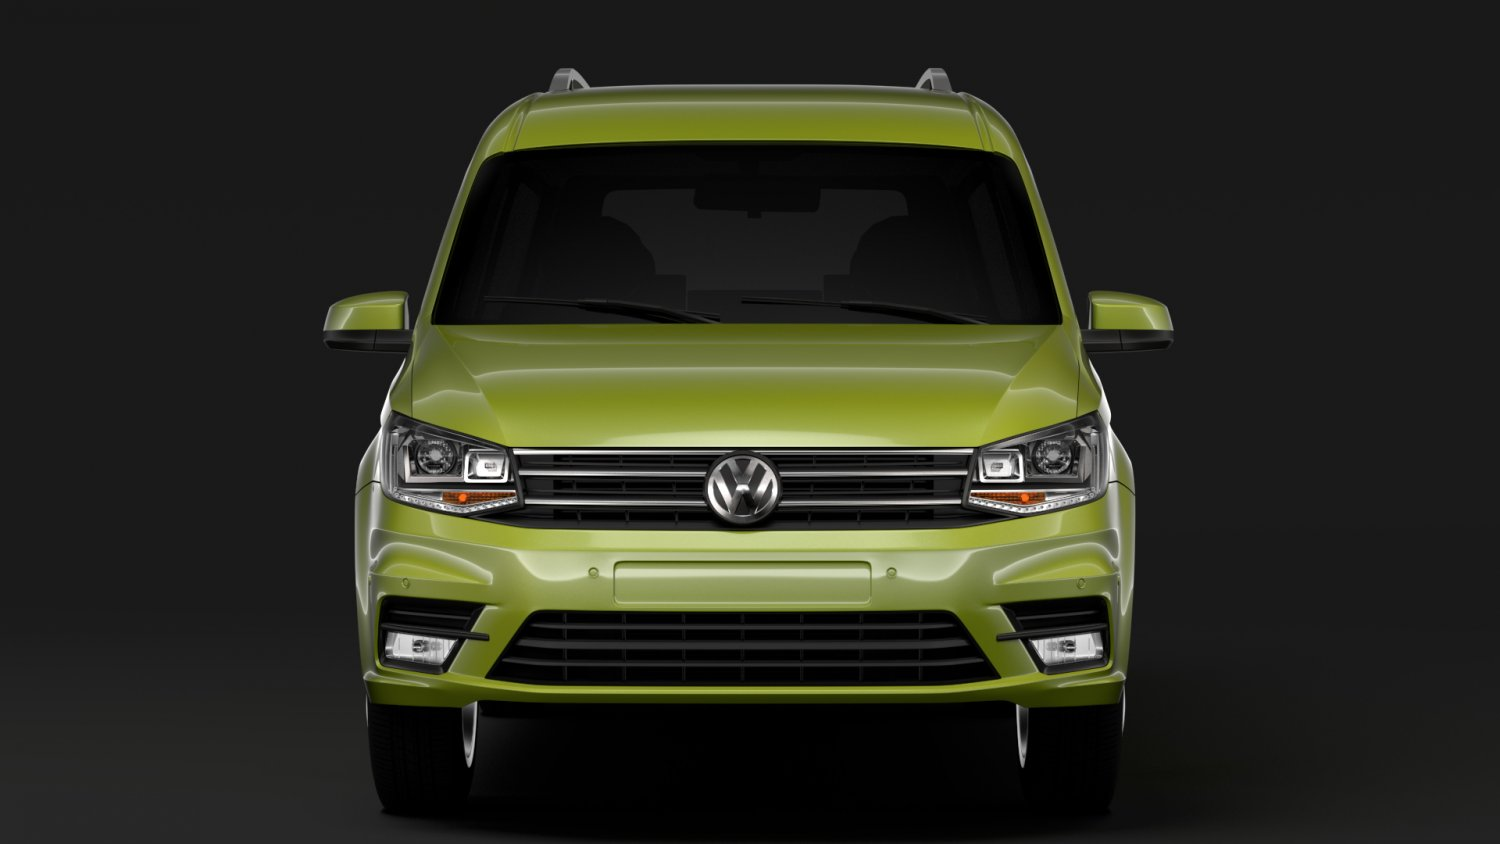 Volkswagen Caddy Maxi 2018 3d Model In Van And Minivan 3dexport